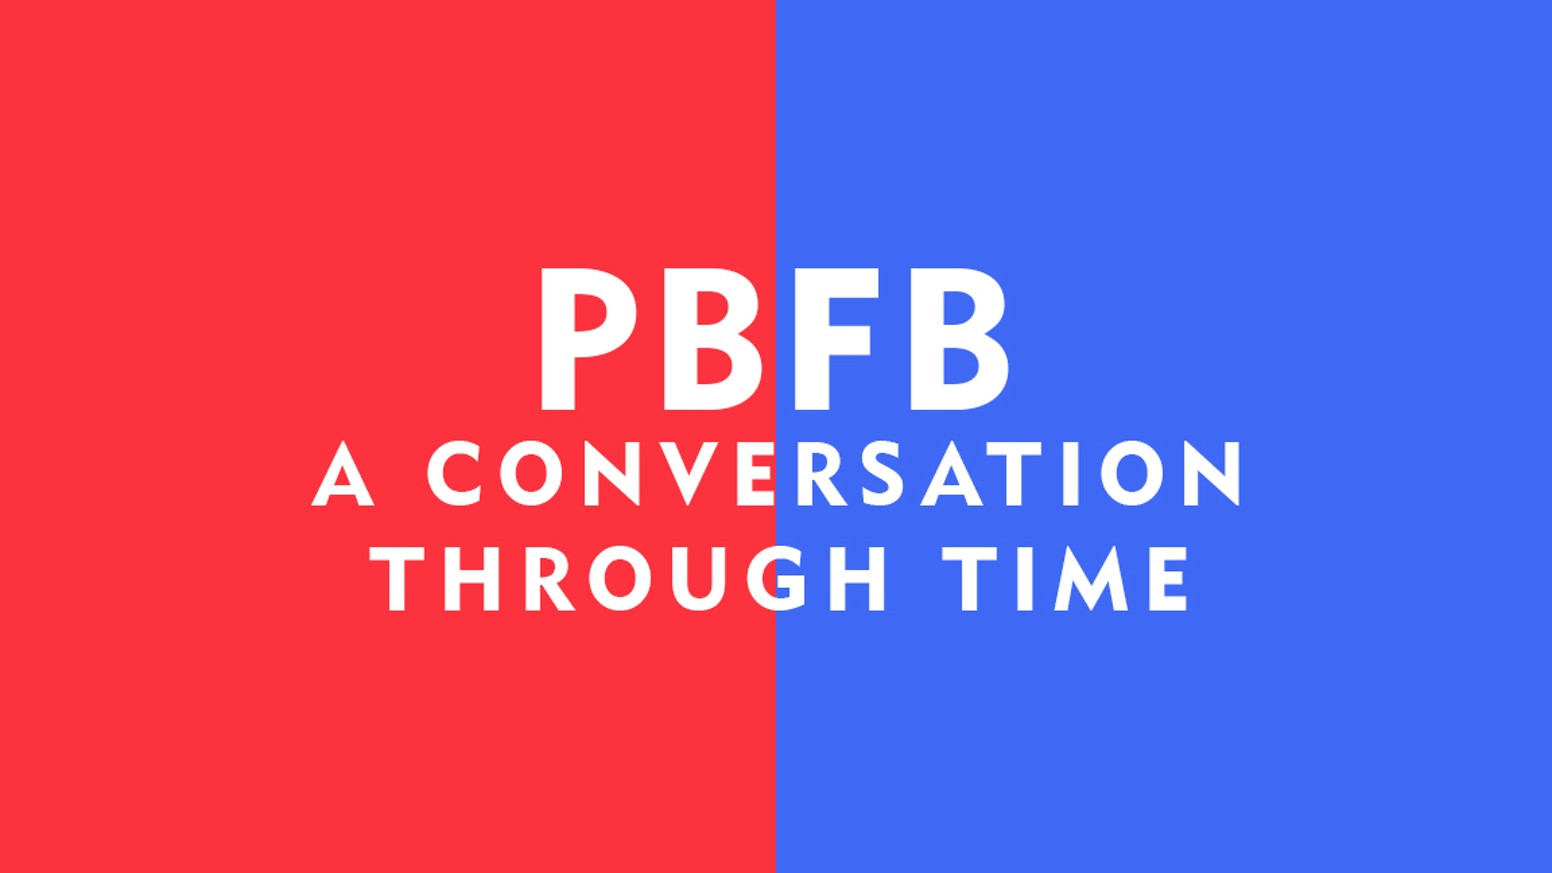 A conversation through time! PBFB- the innovative and award-winning docu-vlog series- is coming back for a full year-long series...